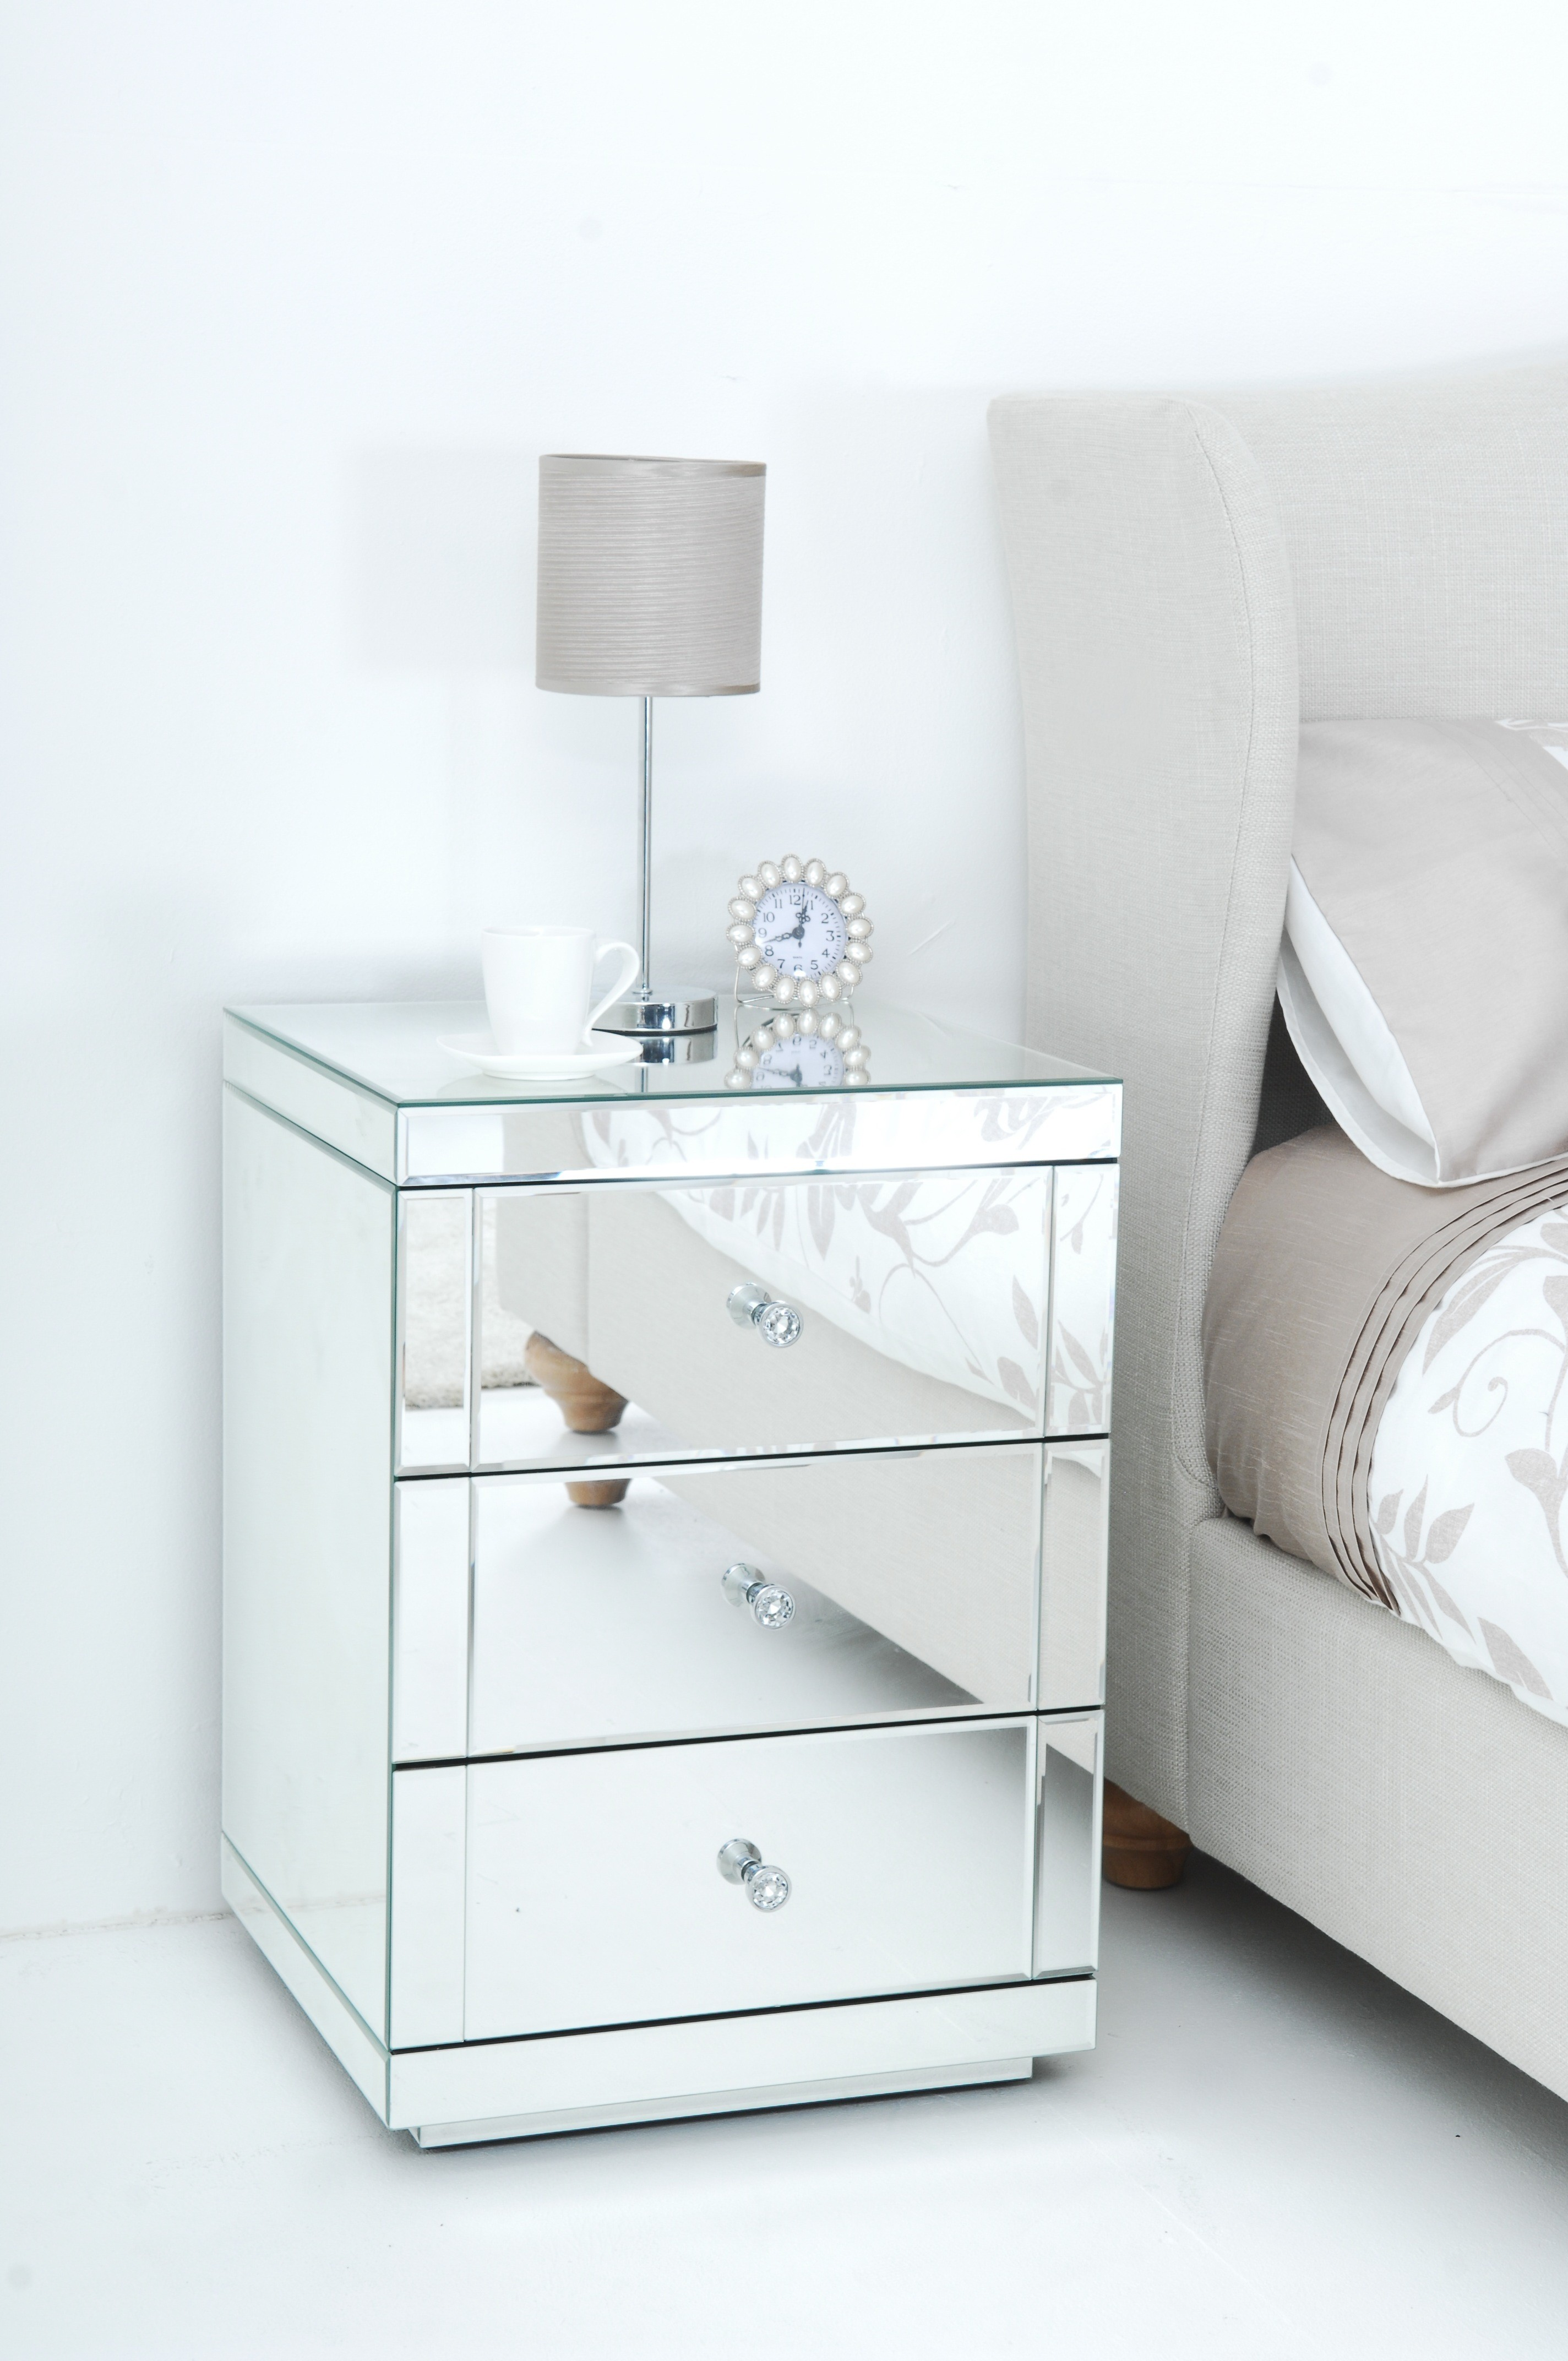 Mirrored Bedroom Furniture Ikea Hawk Haven,Layout For Small Living Room With Fireplace